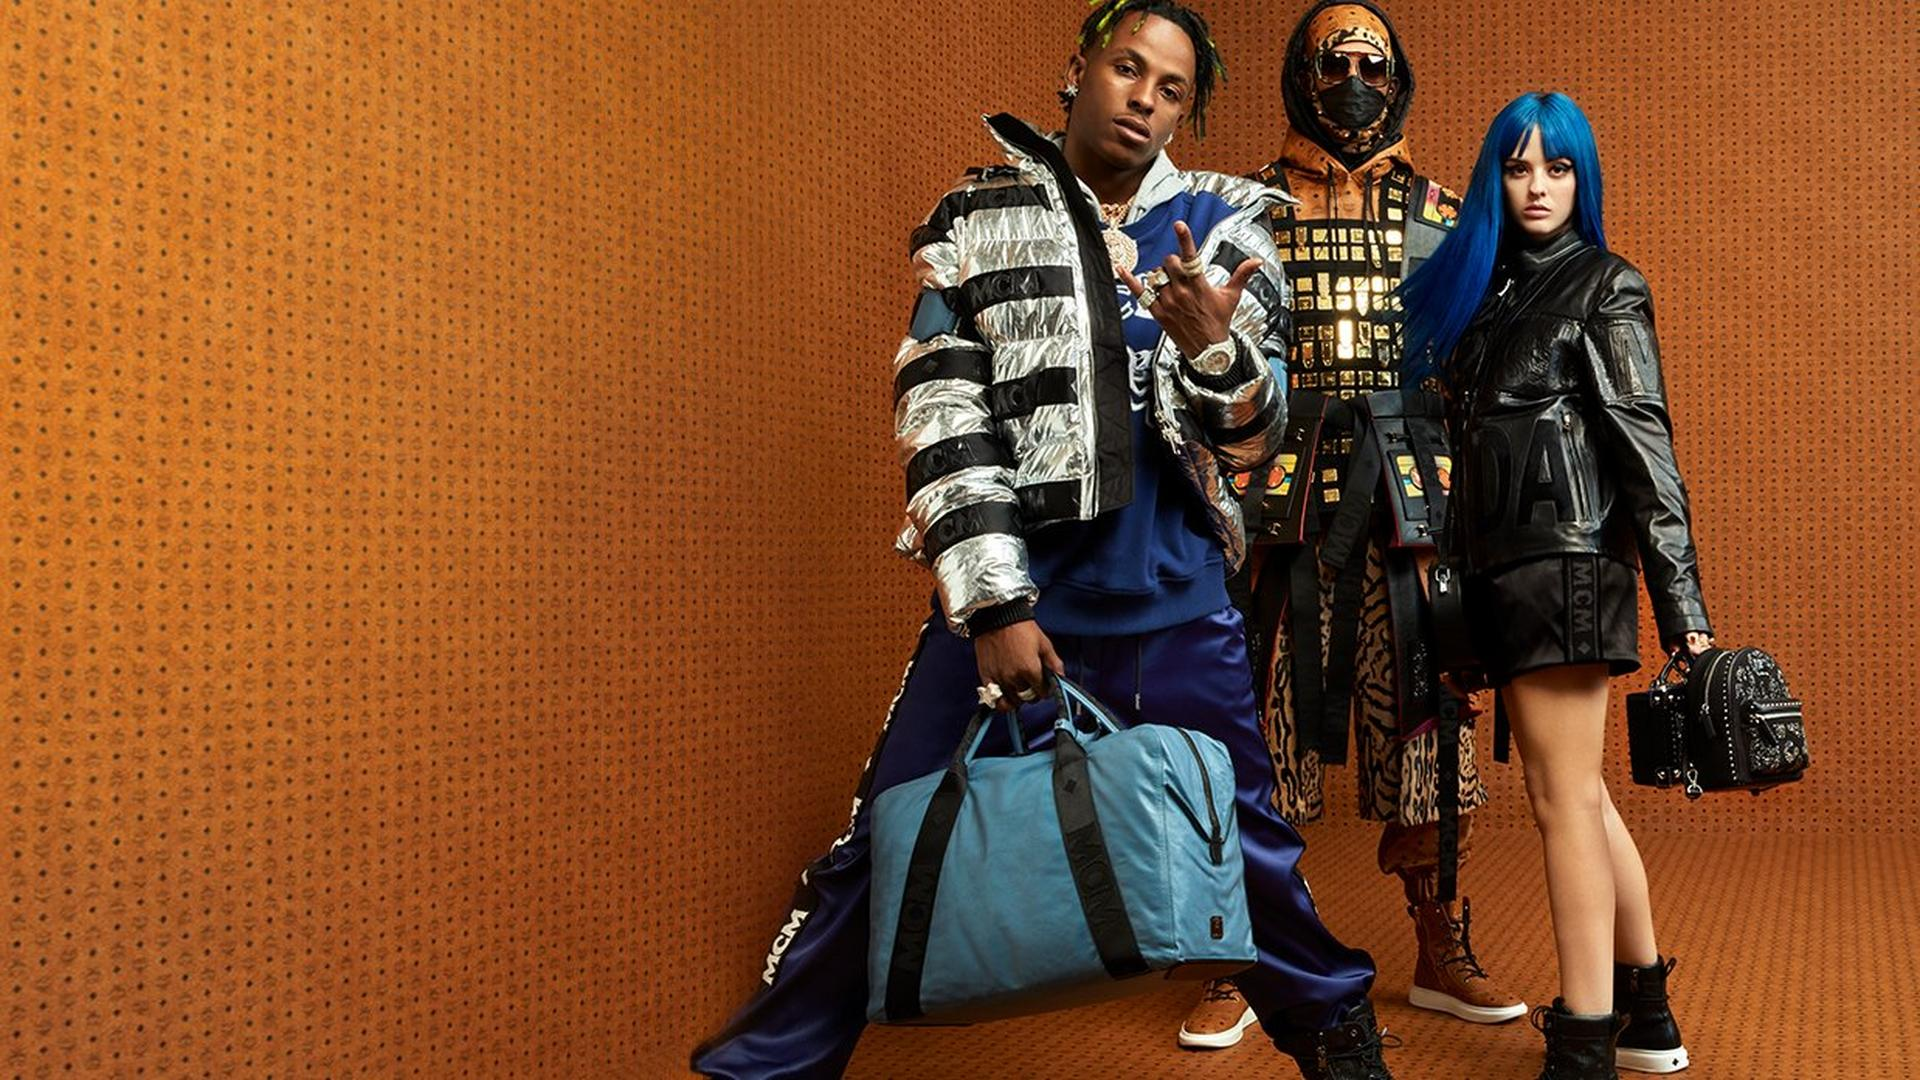 AW18 Campaign Starring Rich the Kid and Site Abellan